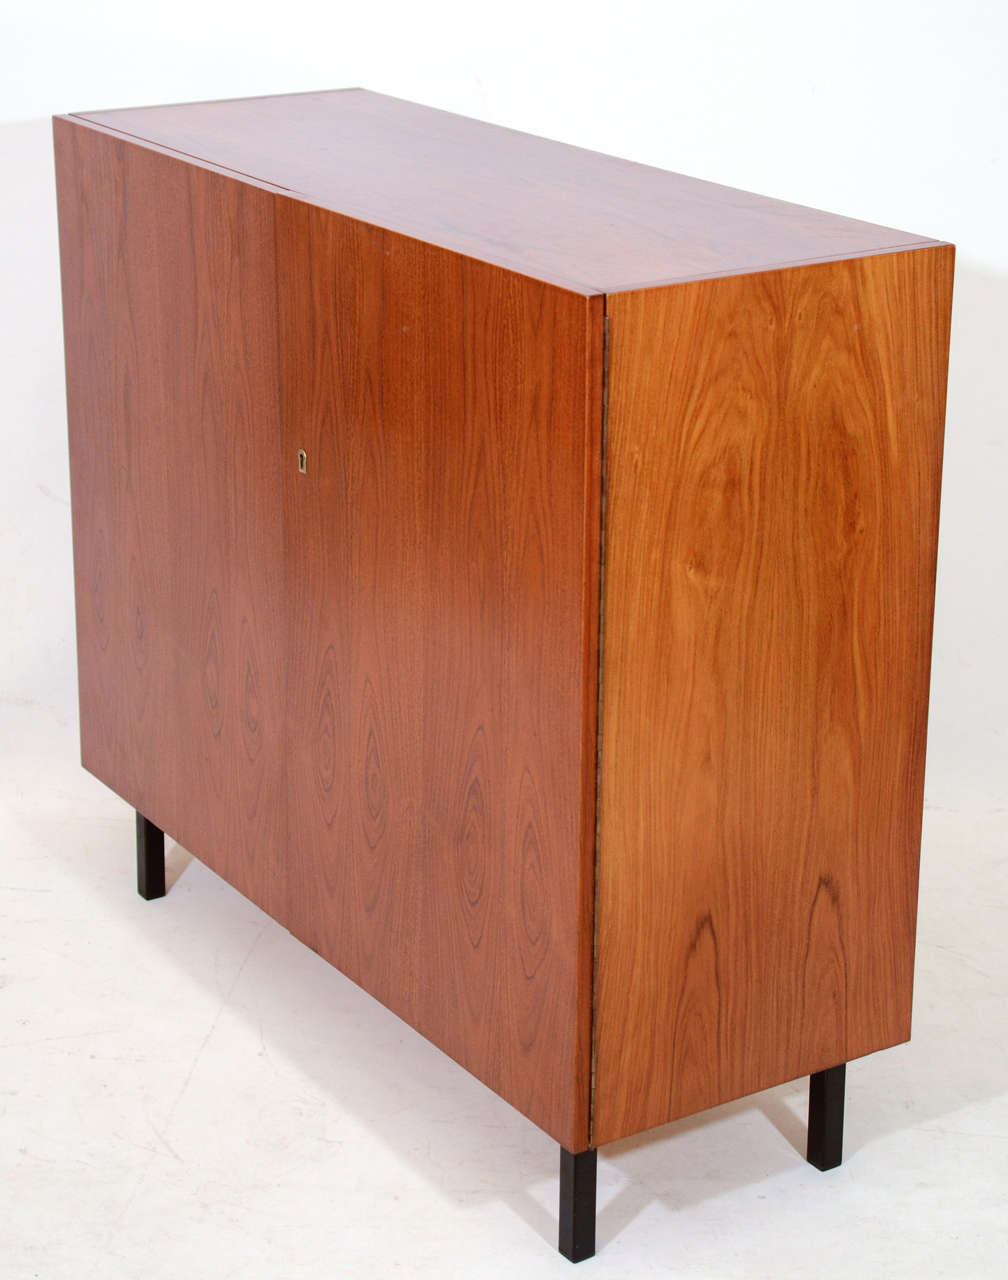 Swedish Desk in a Cabinet For Sale at 1stdibs